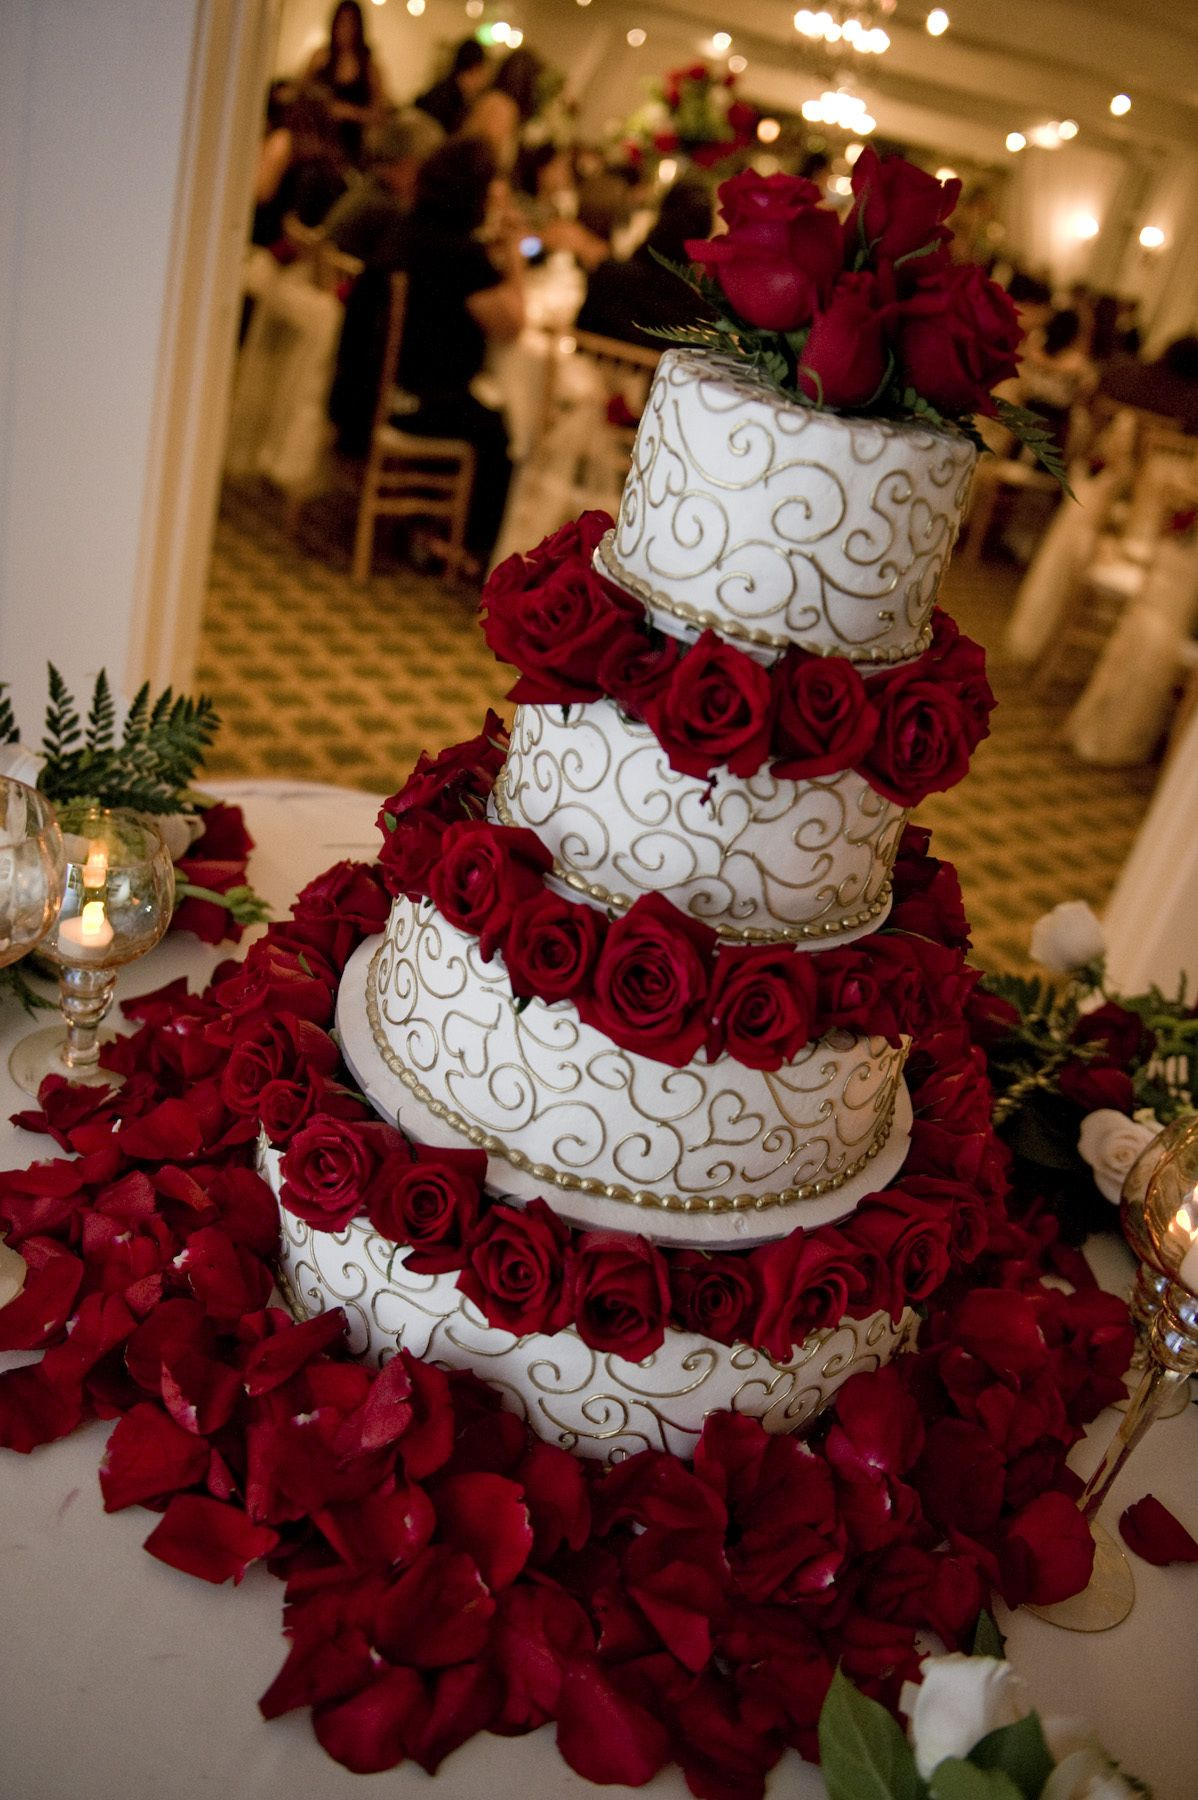 Wedding cakes, our fresh flowers will make it grand